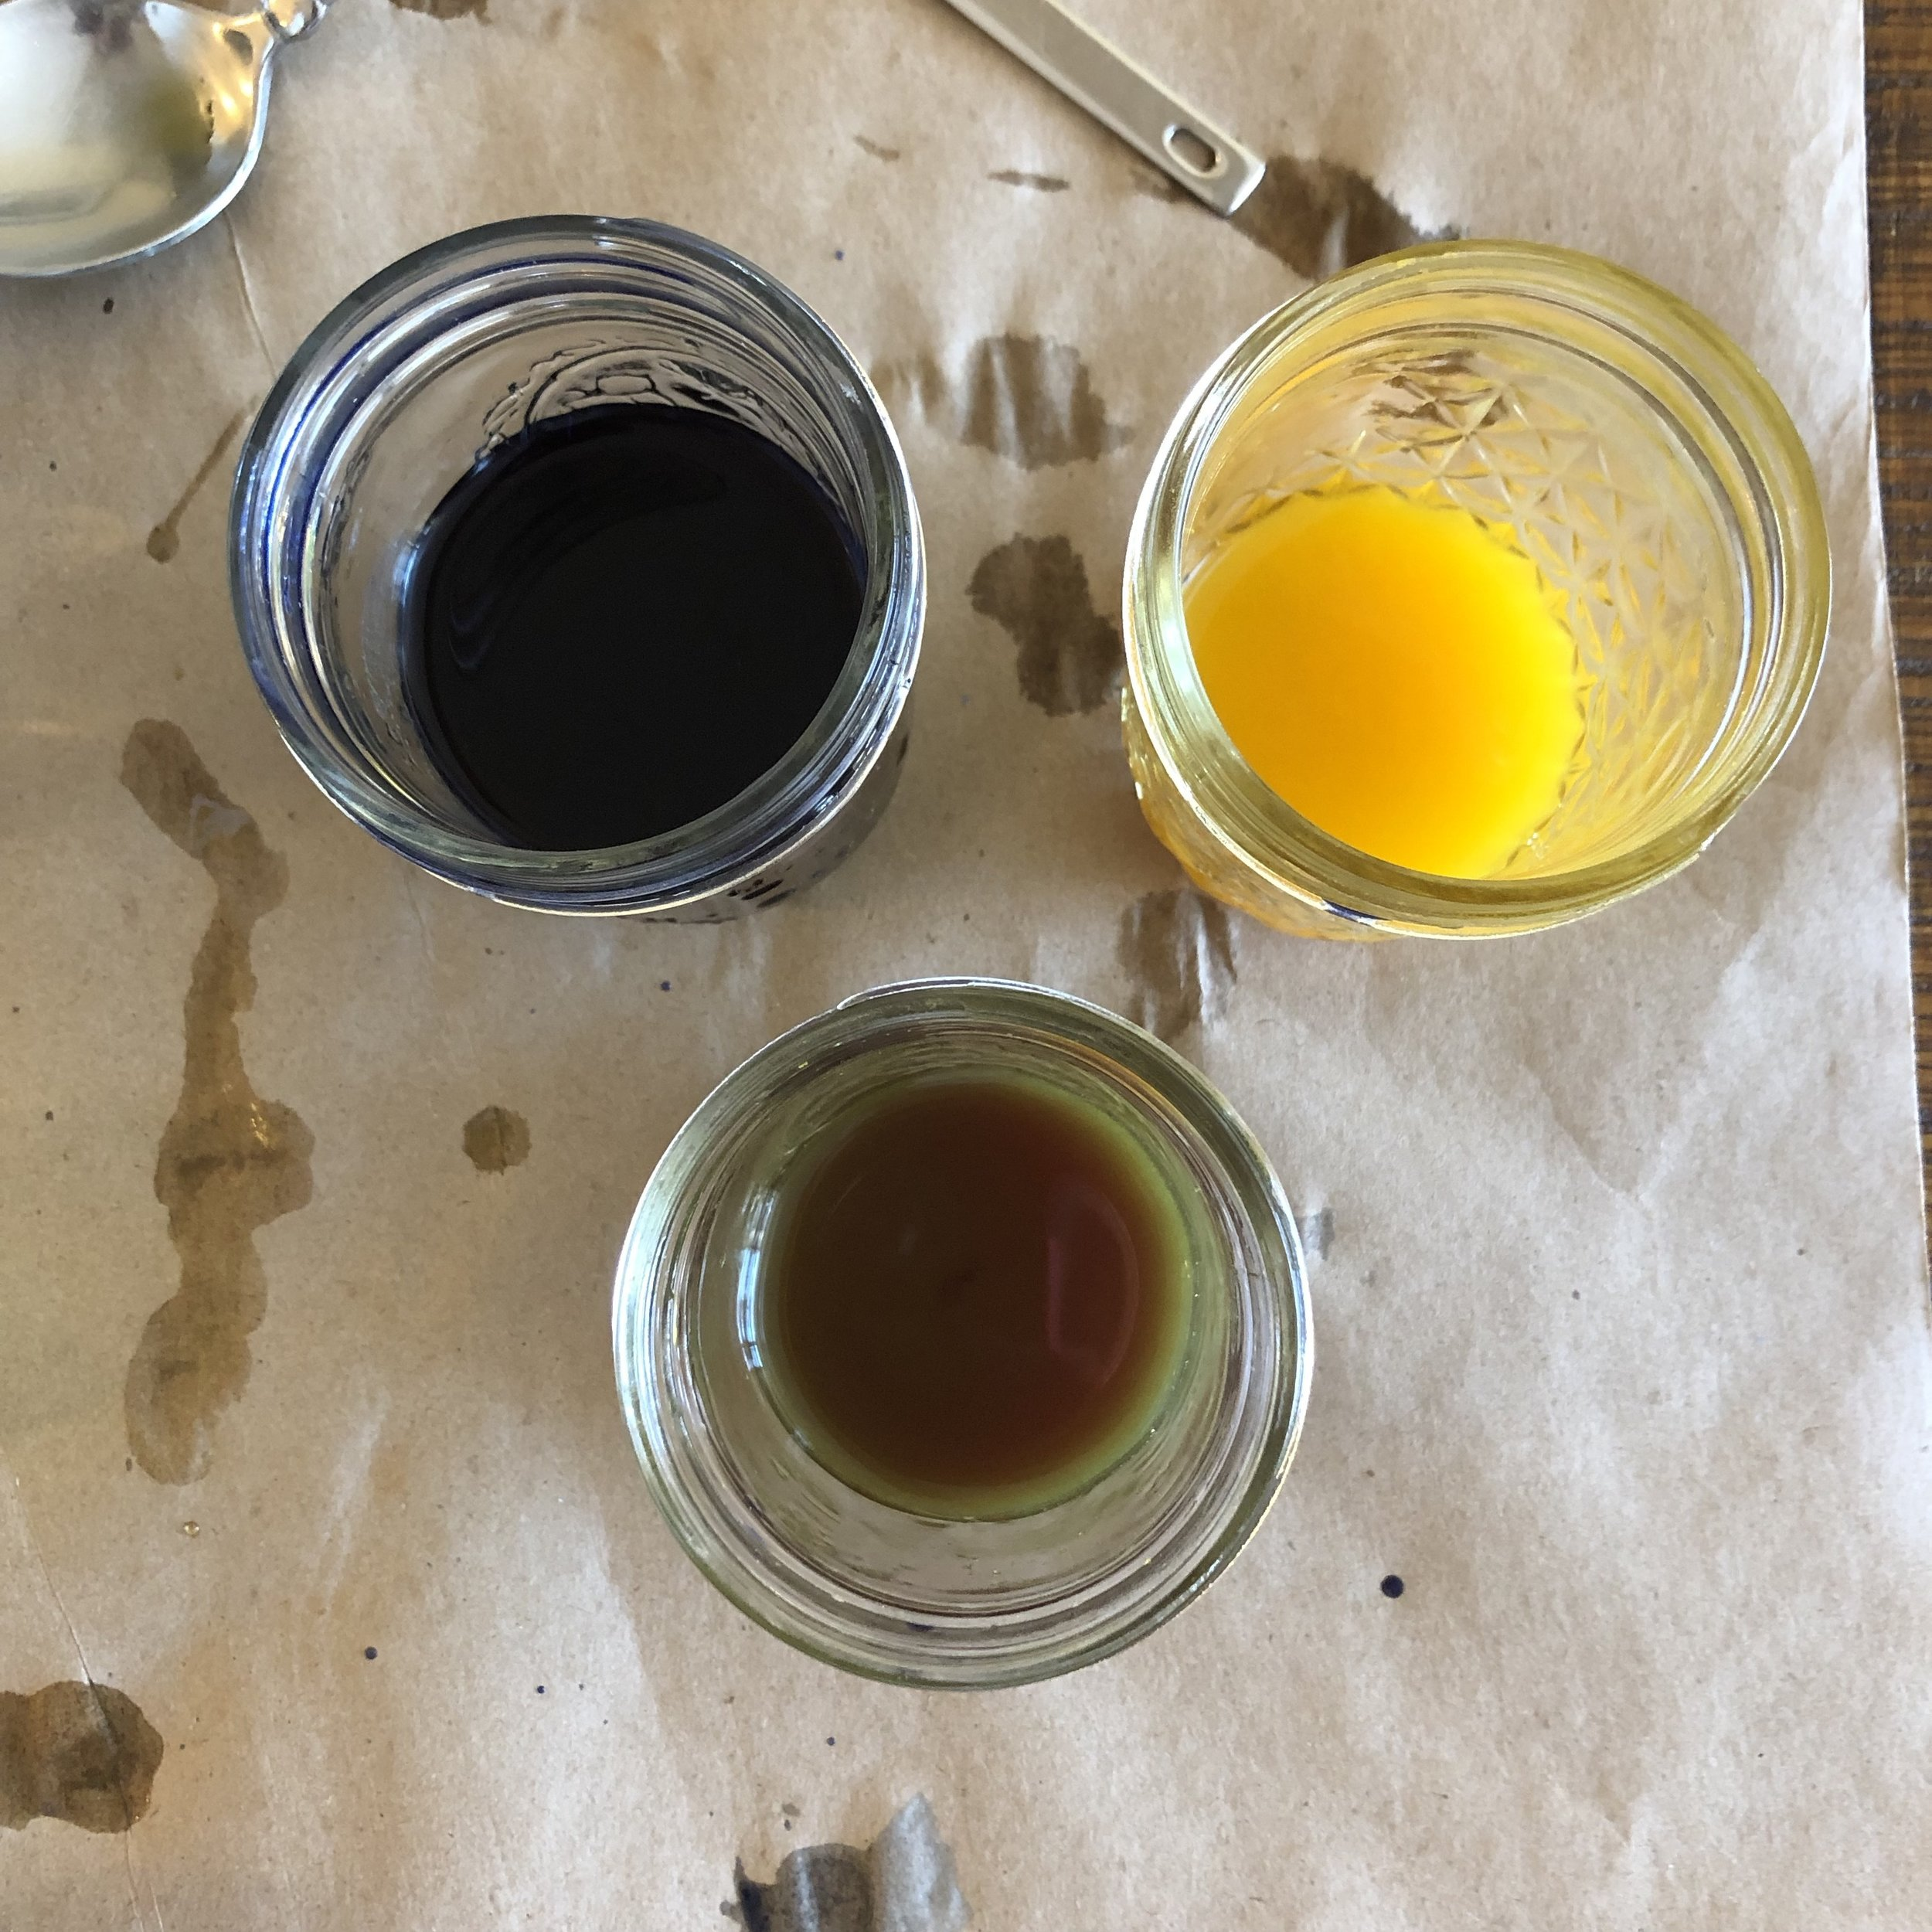 Top left: blue butterfly pea flower dye; Top right: yellow turmeric root dye; Bottom: Green dye made from combining